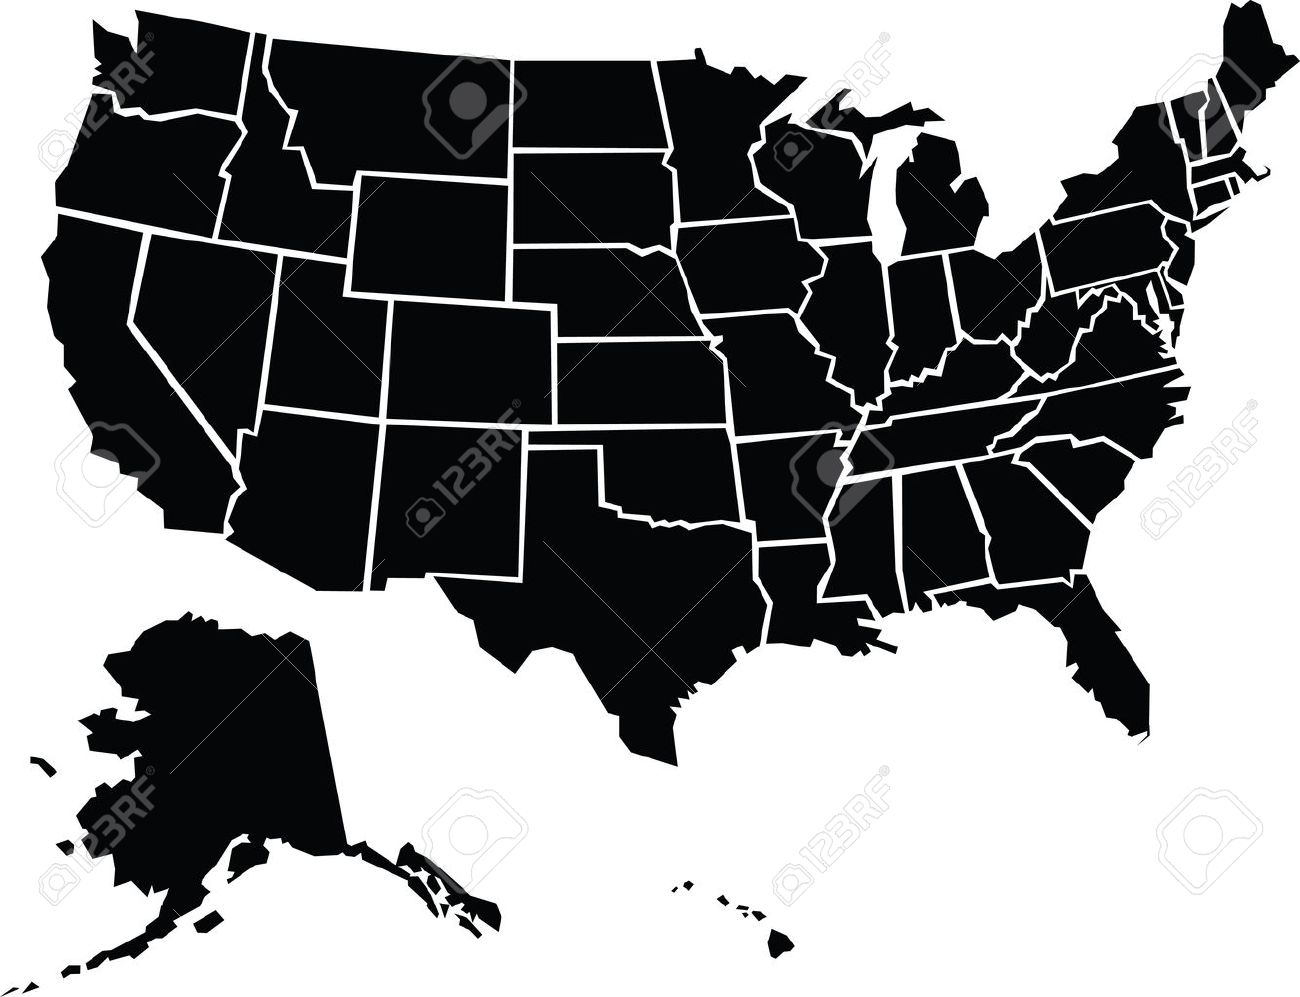 A Chunky Cartoon Map Of The USA Including Alaska And Hawaii - The united states hawaii alaska map